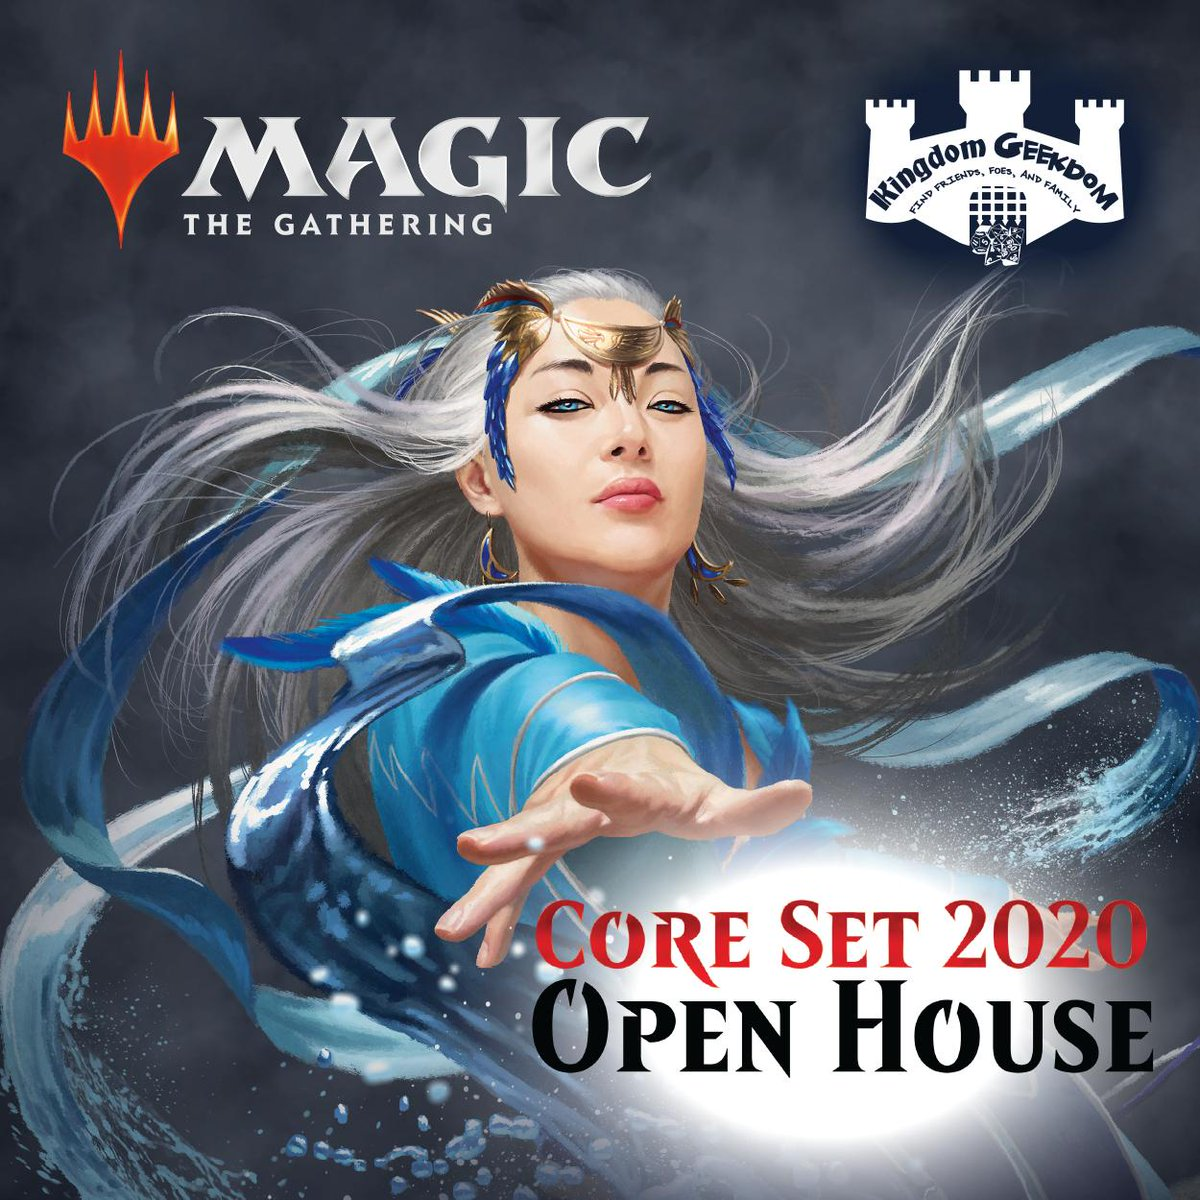 Next weekend is #LearntoPlay #OpenHouse for @Magic: The Gathering's #M20 set! Stop in any time Satuday and we'll teach you to play as well as give you a #FREE deck. Come back for #FridayNightMagic because your first #FNM with us is FREE! Everyone loves #FreeStuff!